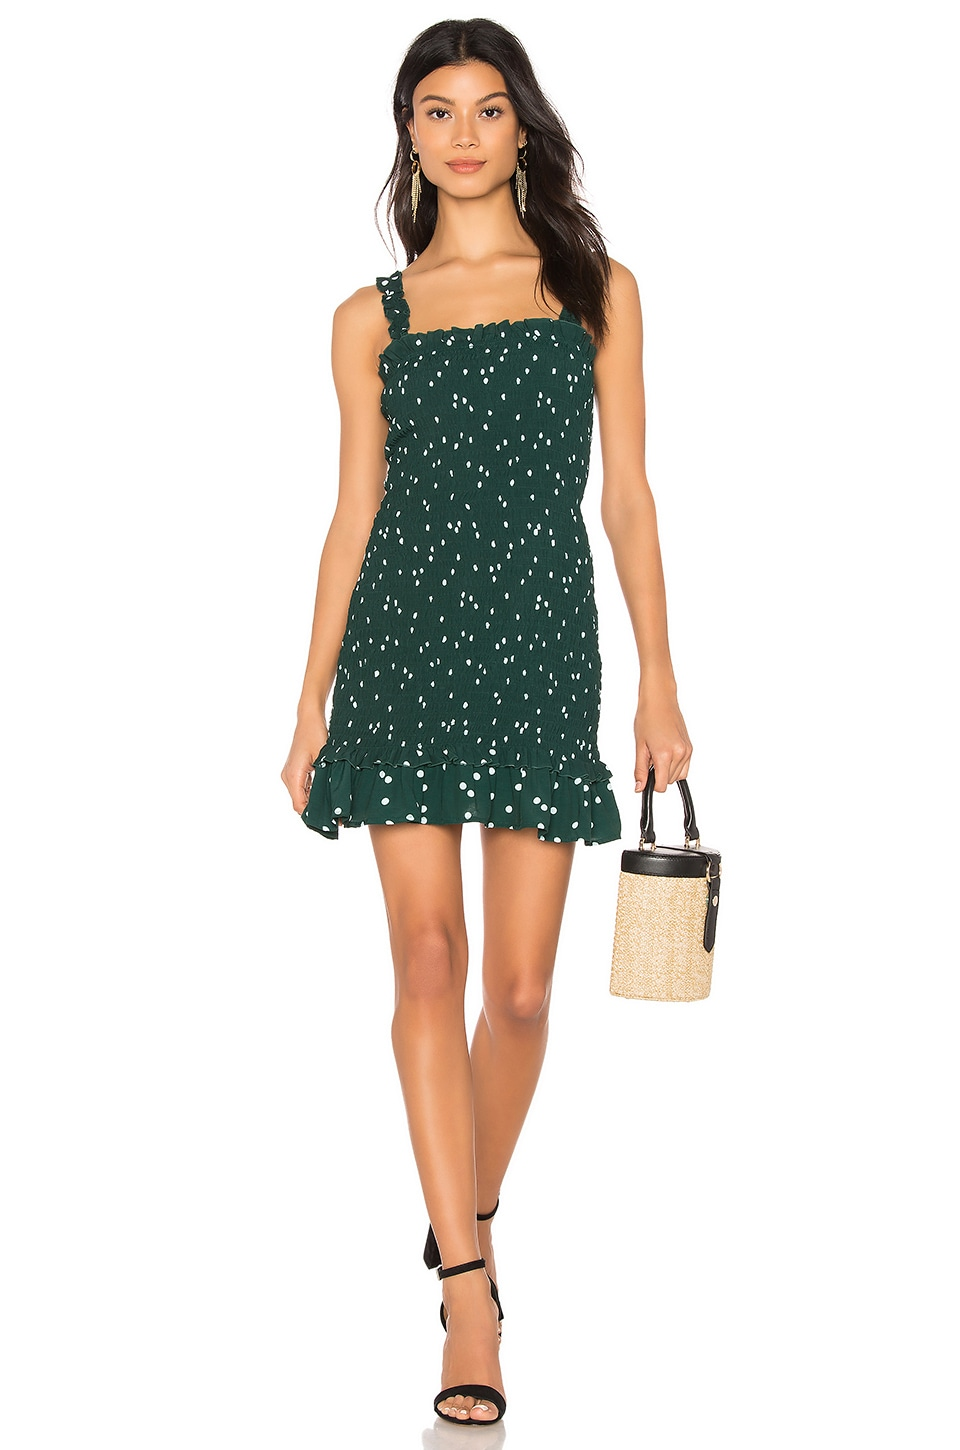 FAITHFULL THE BRAND Del Mar Dress in Green